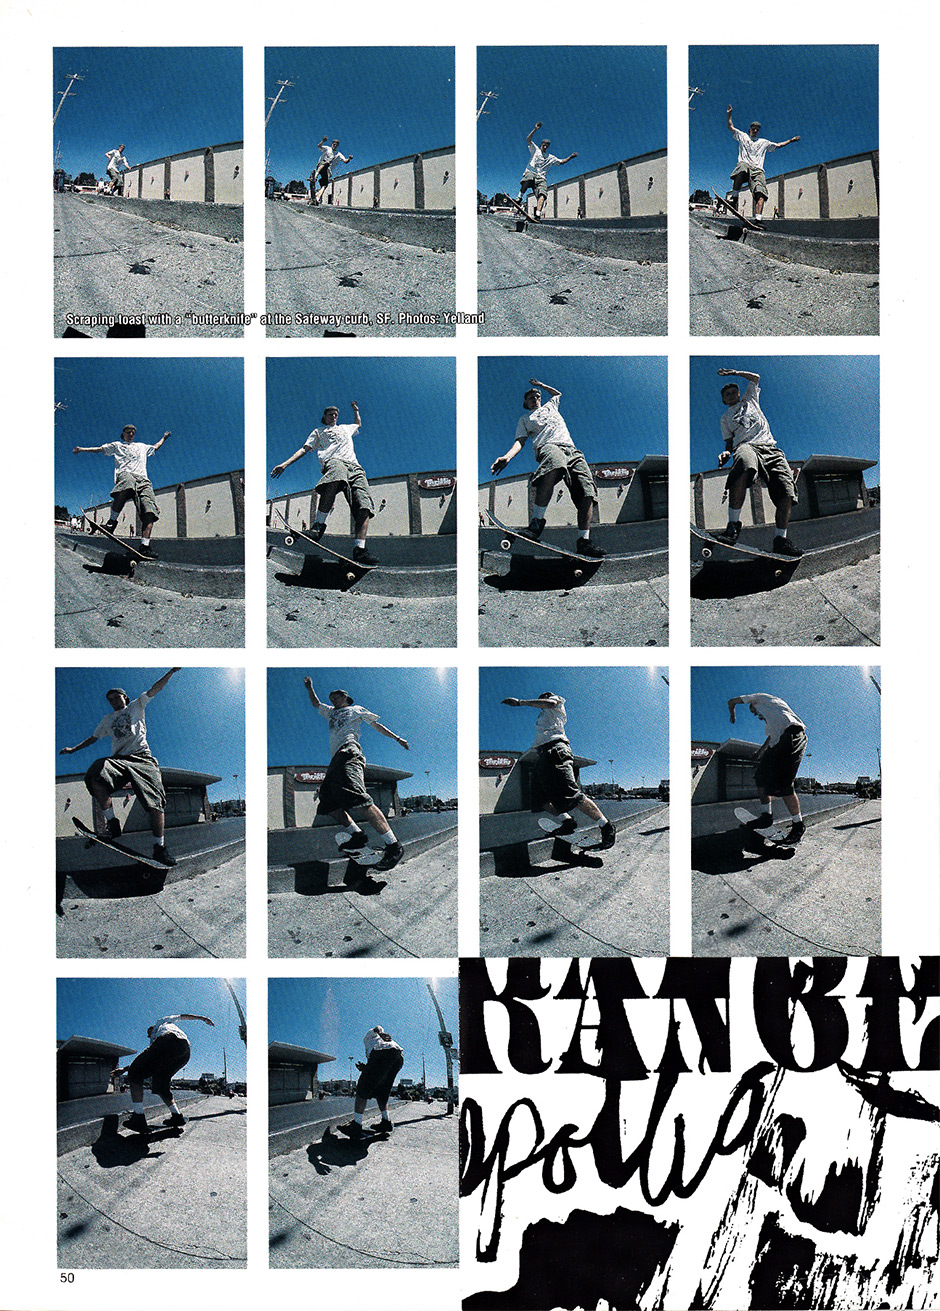 No apologies for the third Julien stranger appearance. More fire at Safeway 1992. Photos: Tobin Yelland. Inset below - another sequence of signature James Kelch shapes at Embarcadero